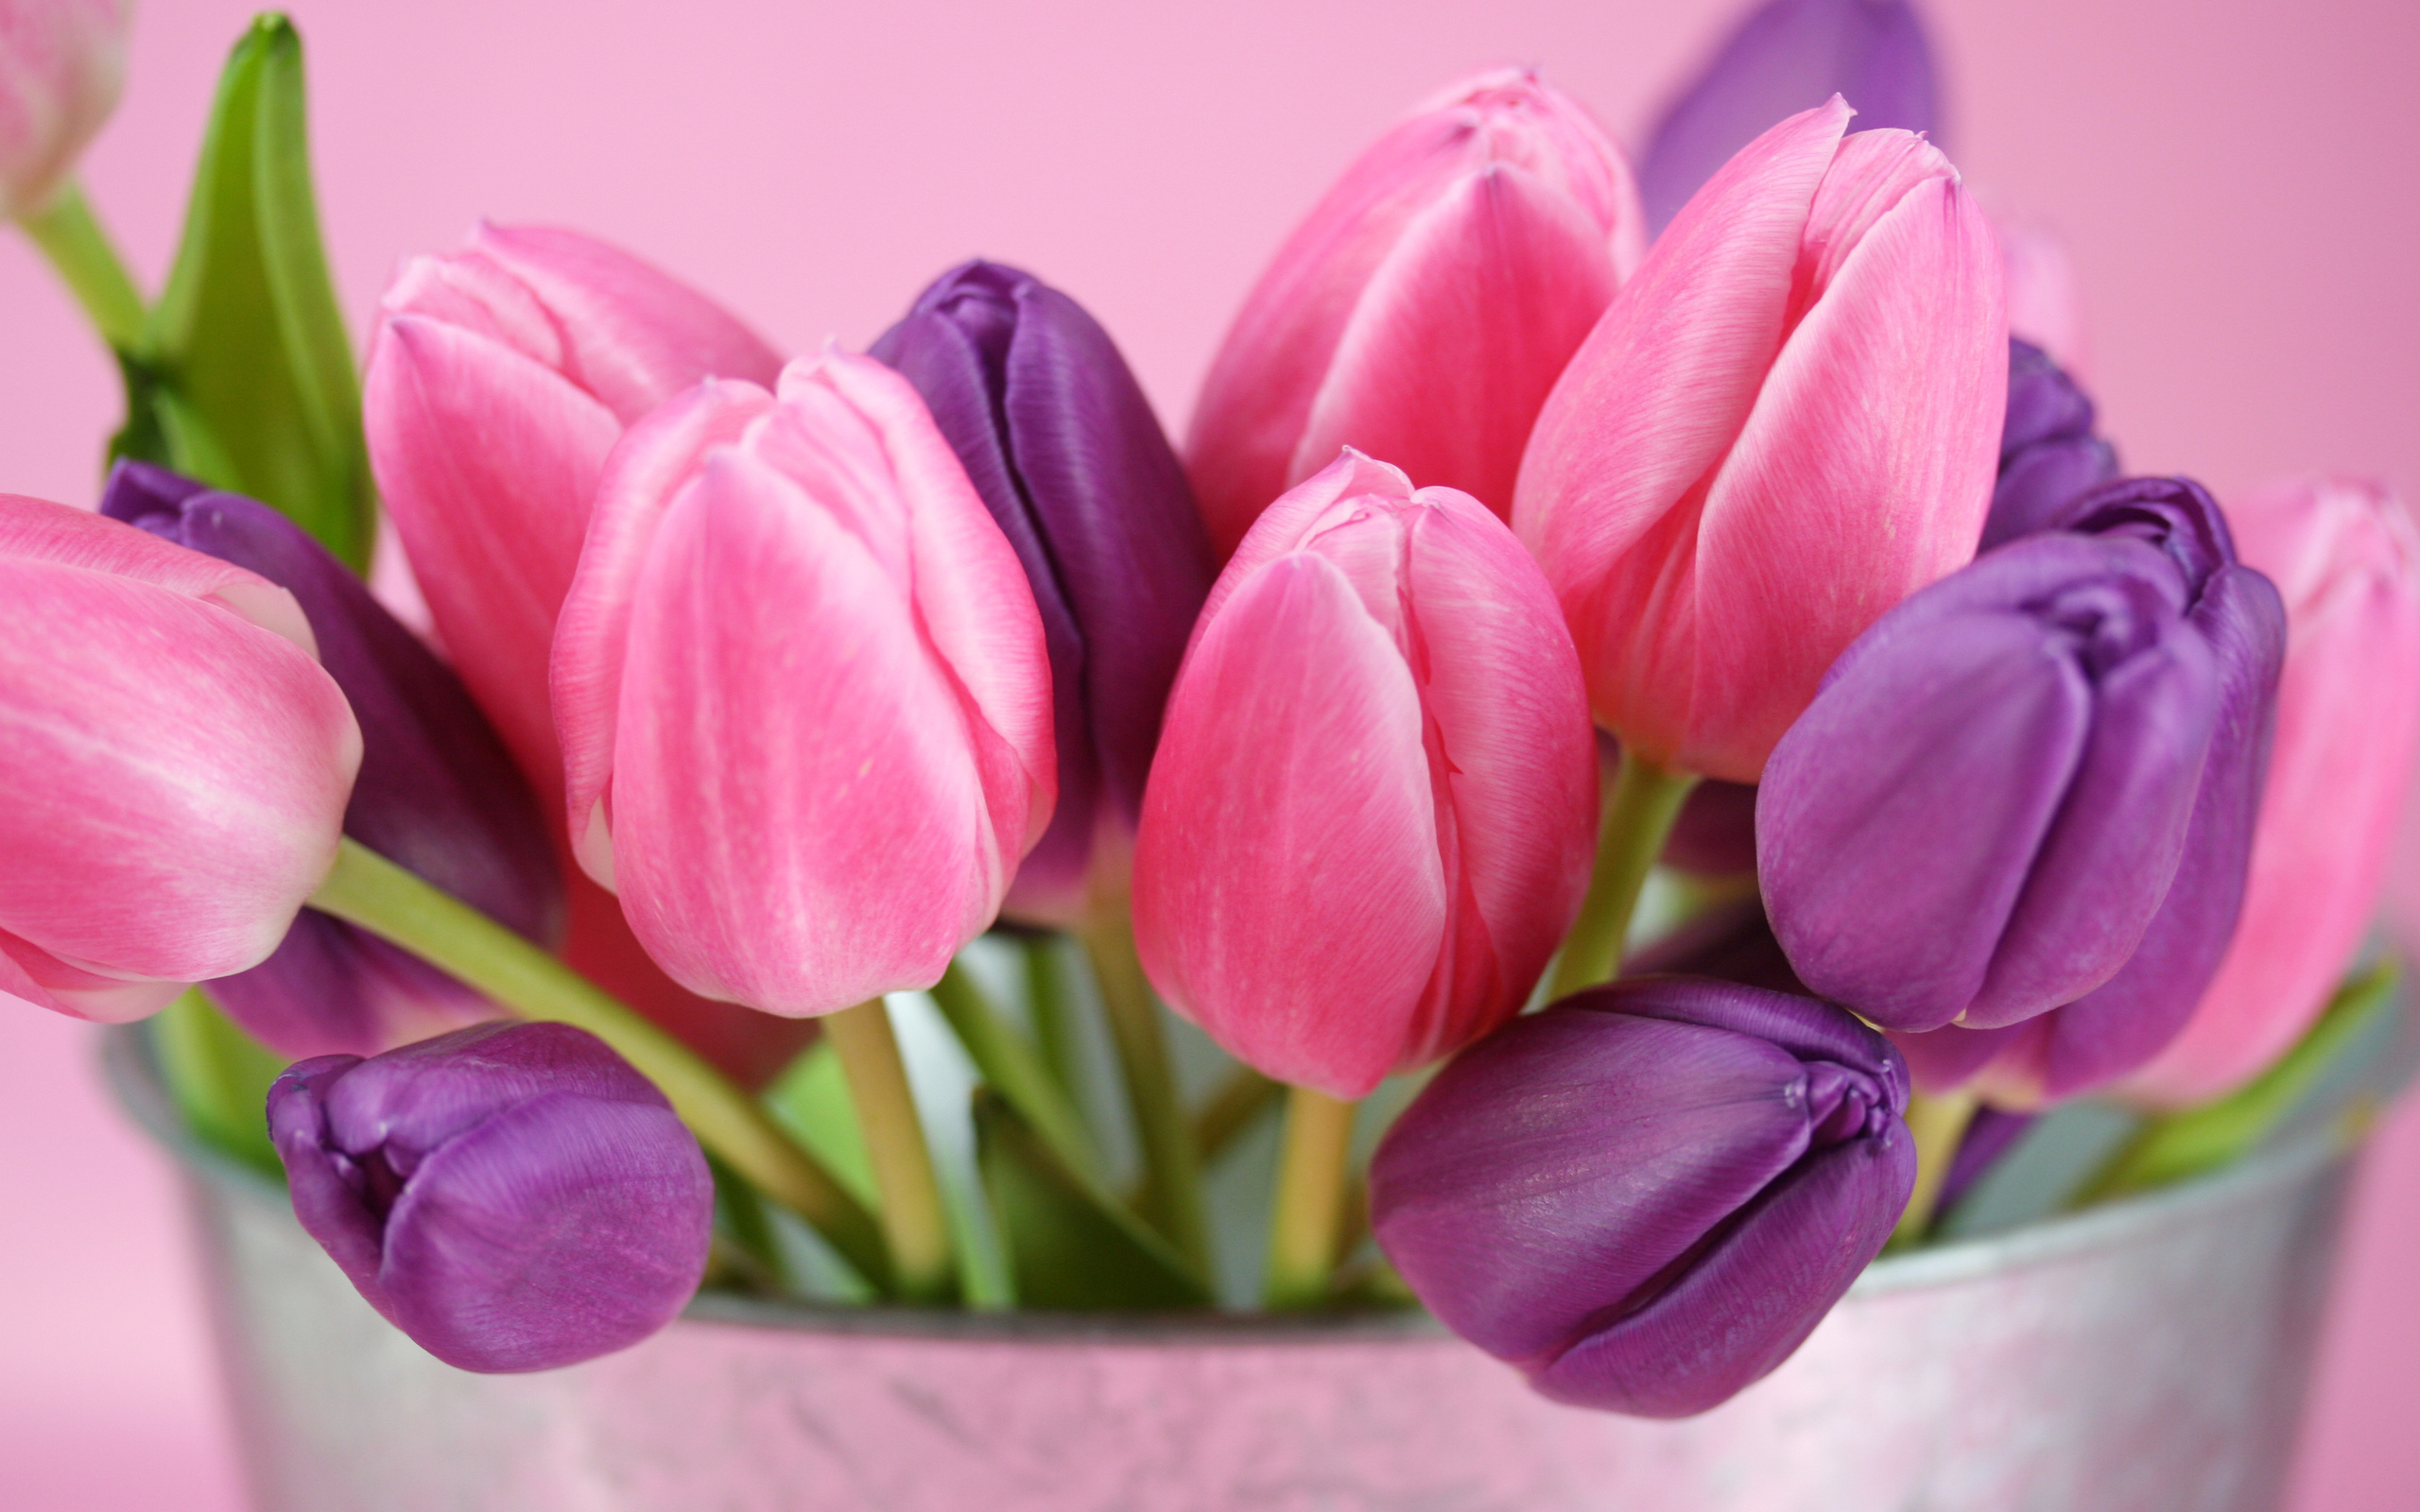 tulips pictures purple pink